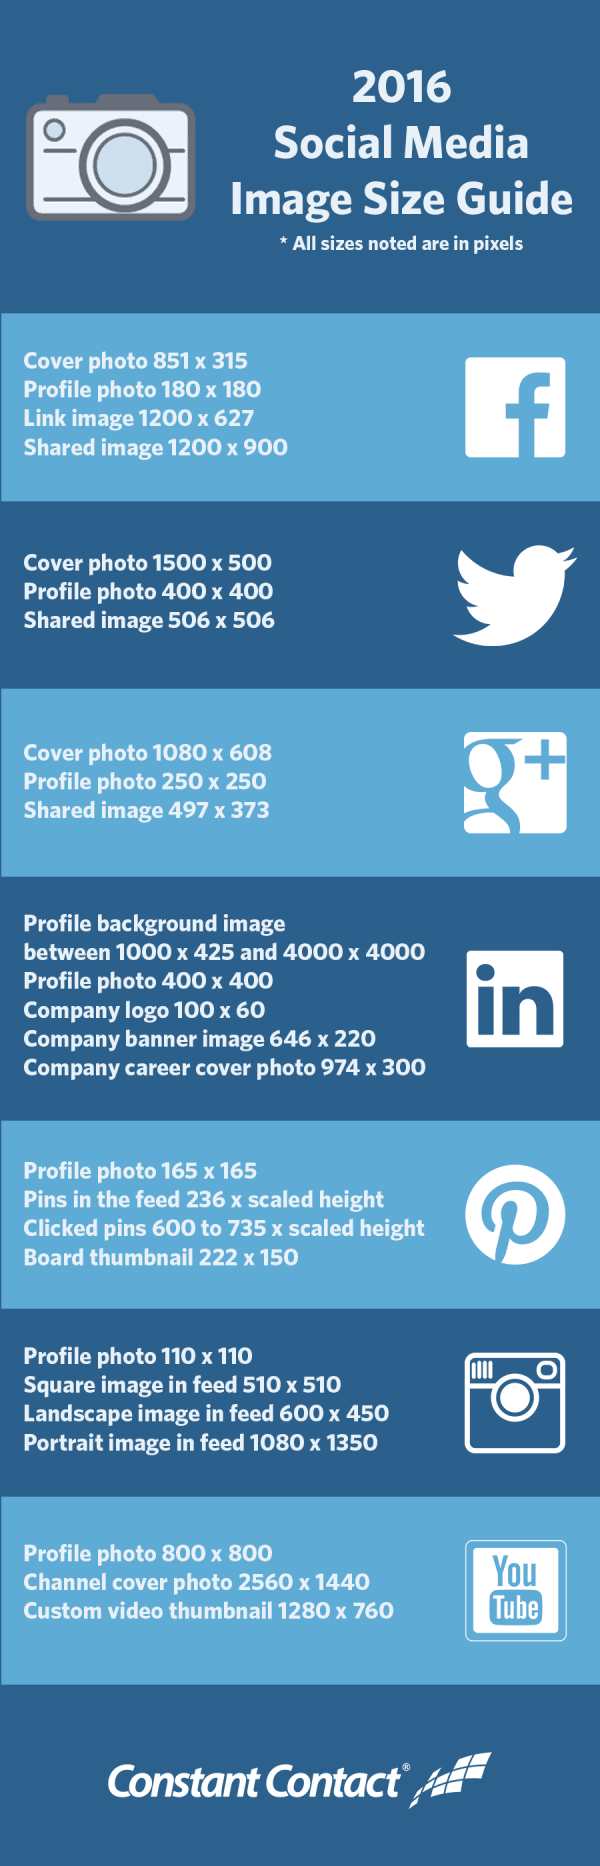 Blog_Images_Infographic